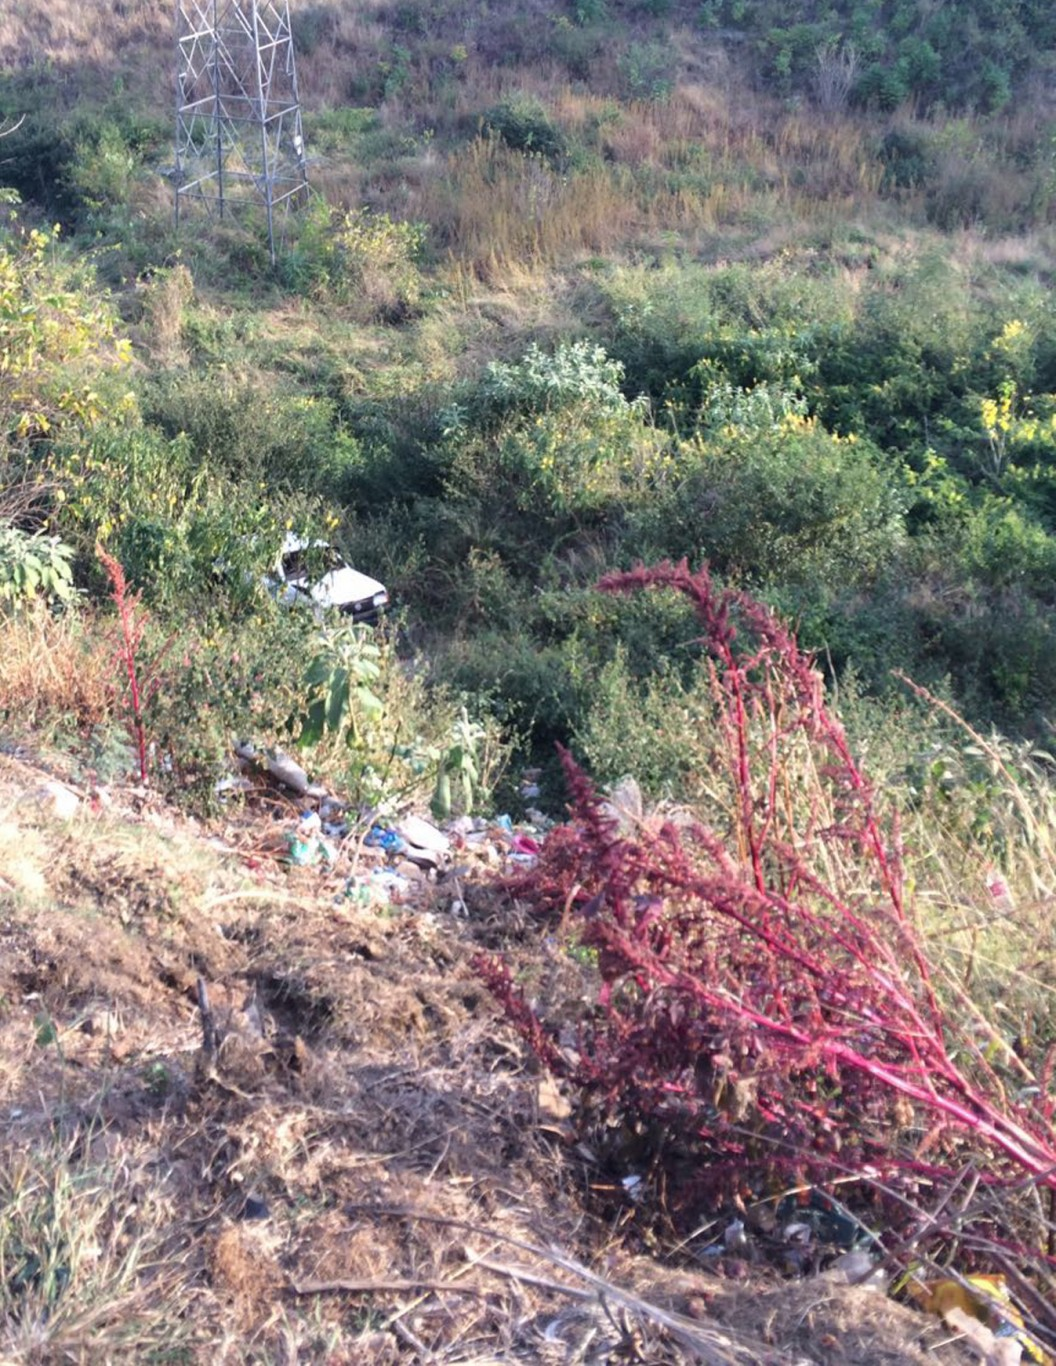 Vehicle found several metres down embankment - two injured, Northdale